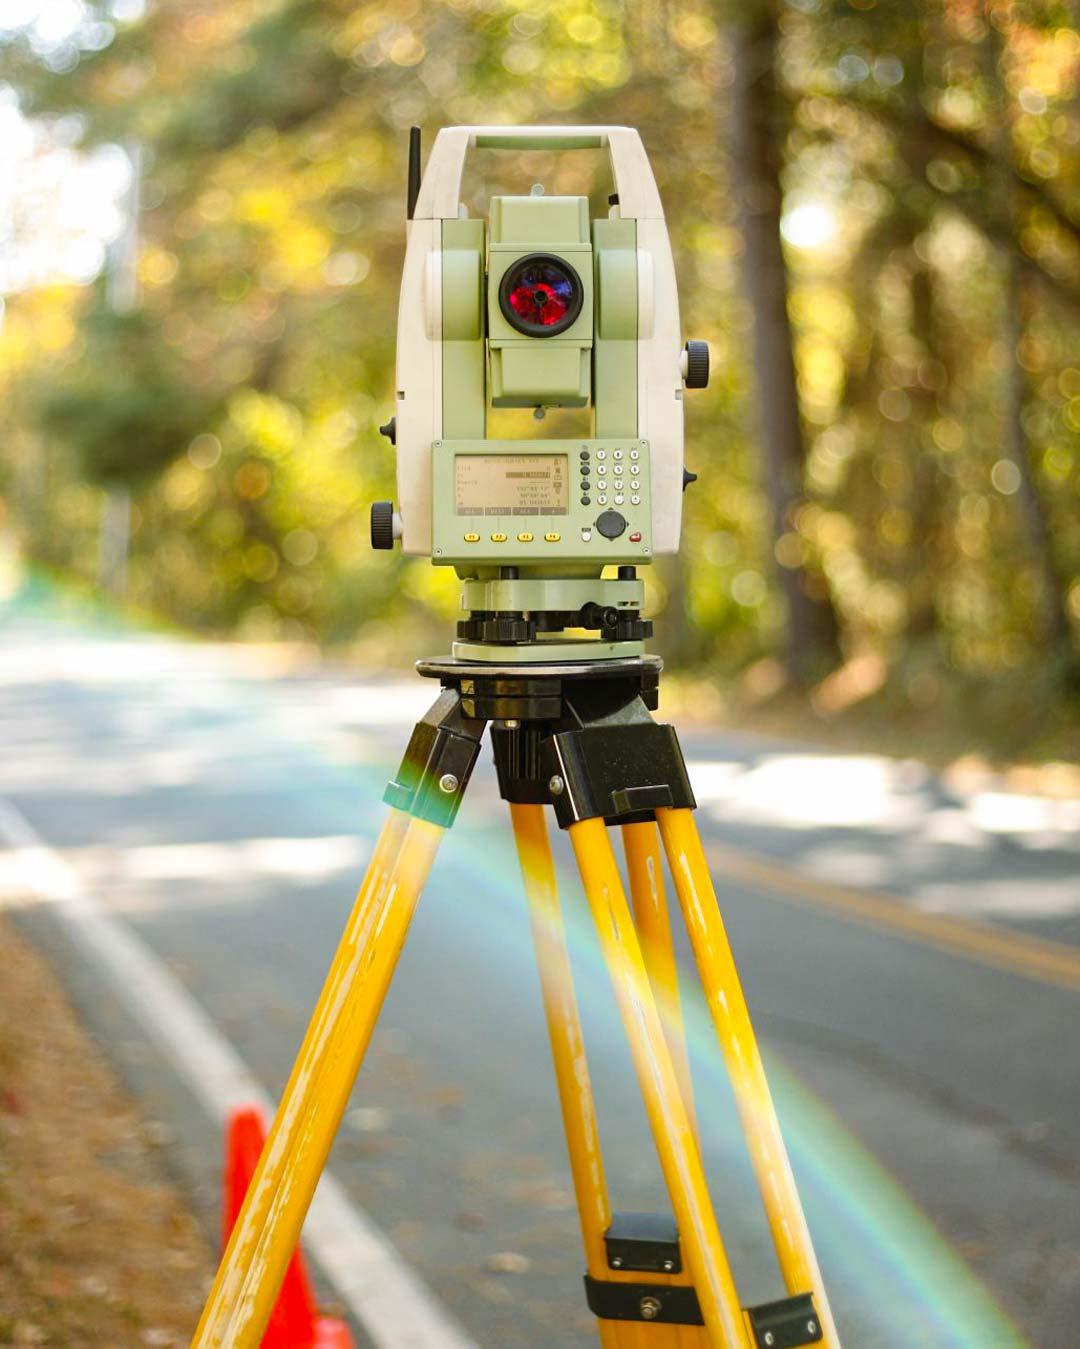 industrial land surveying | Promised Land Survey LLC, Derry, NH